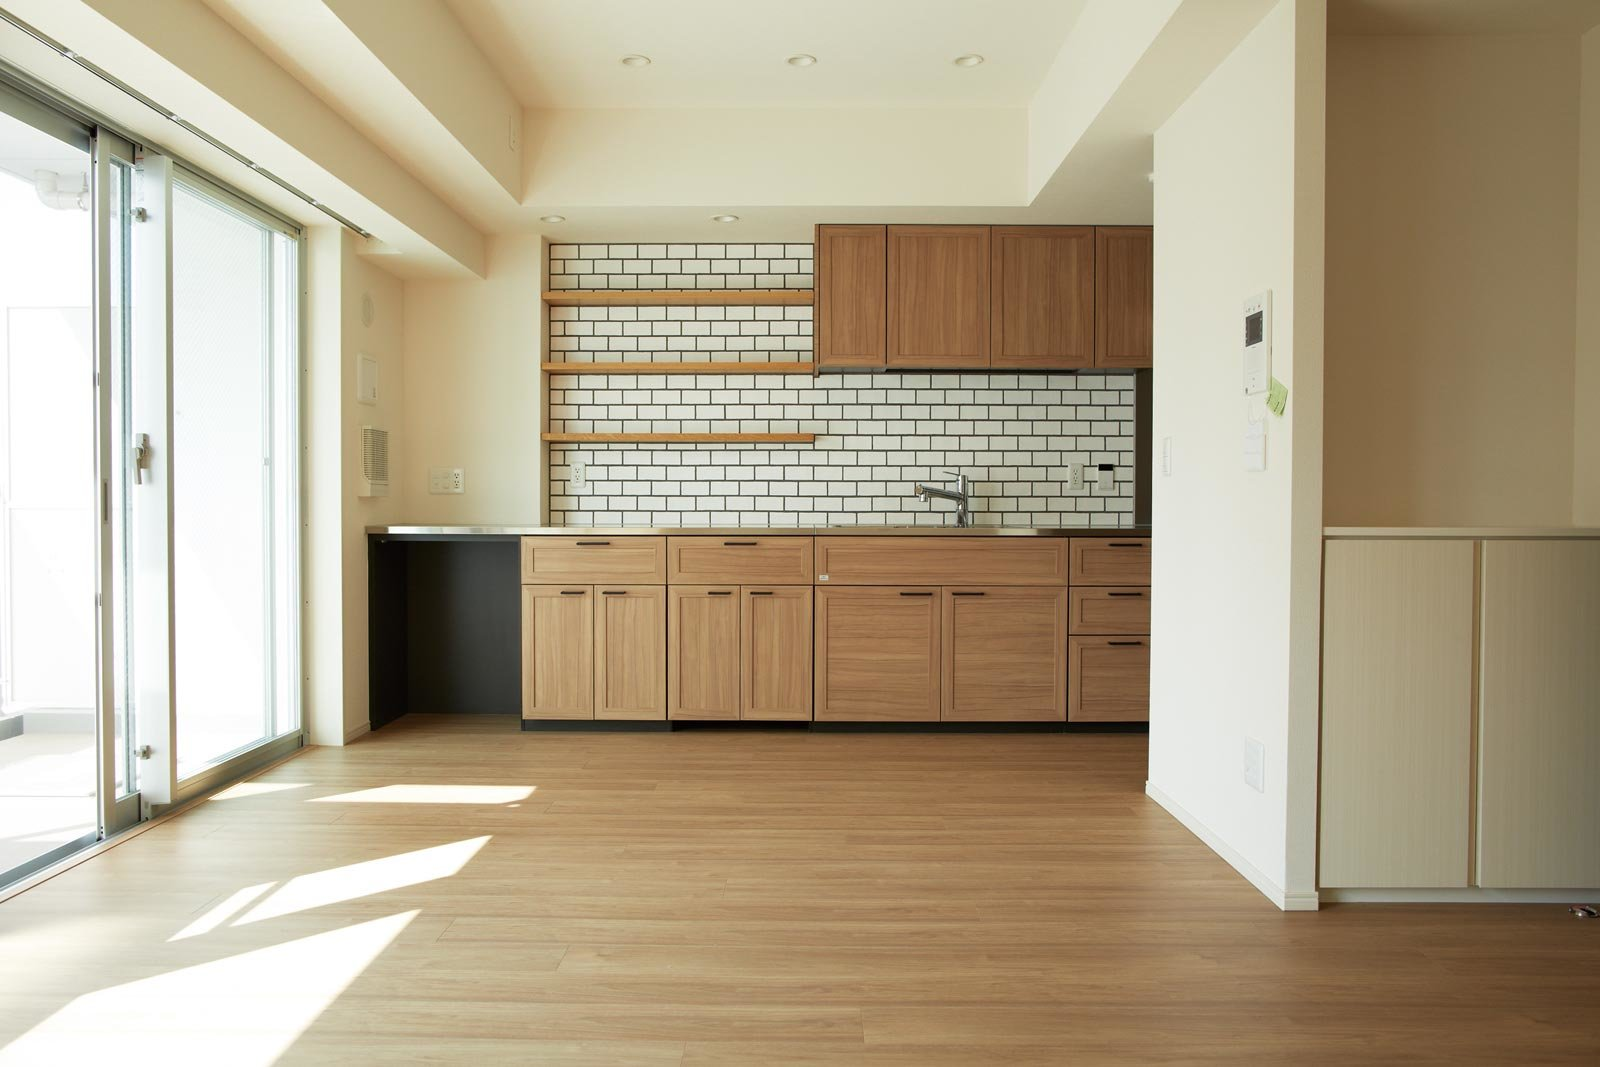 kitchen01_oyama-theresidence.jpg